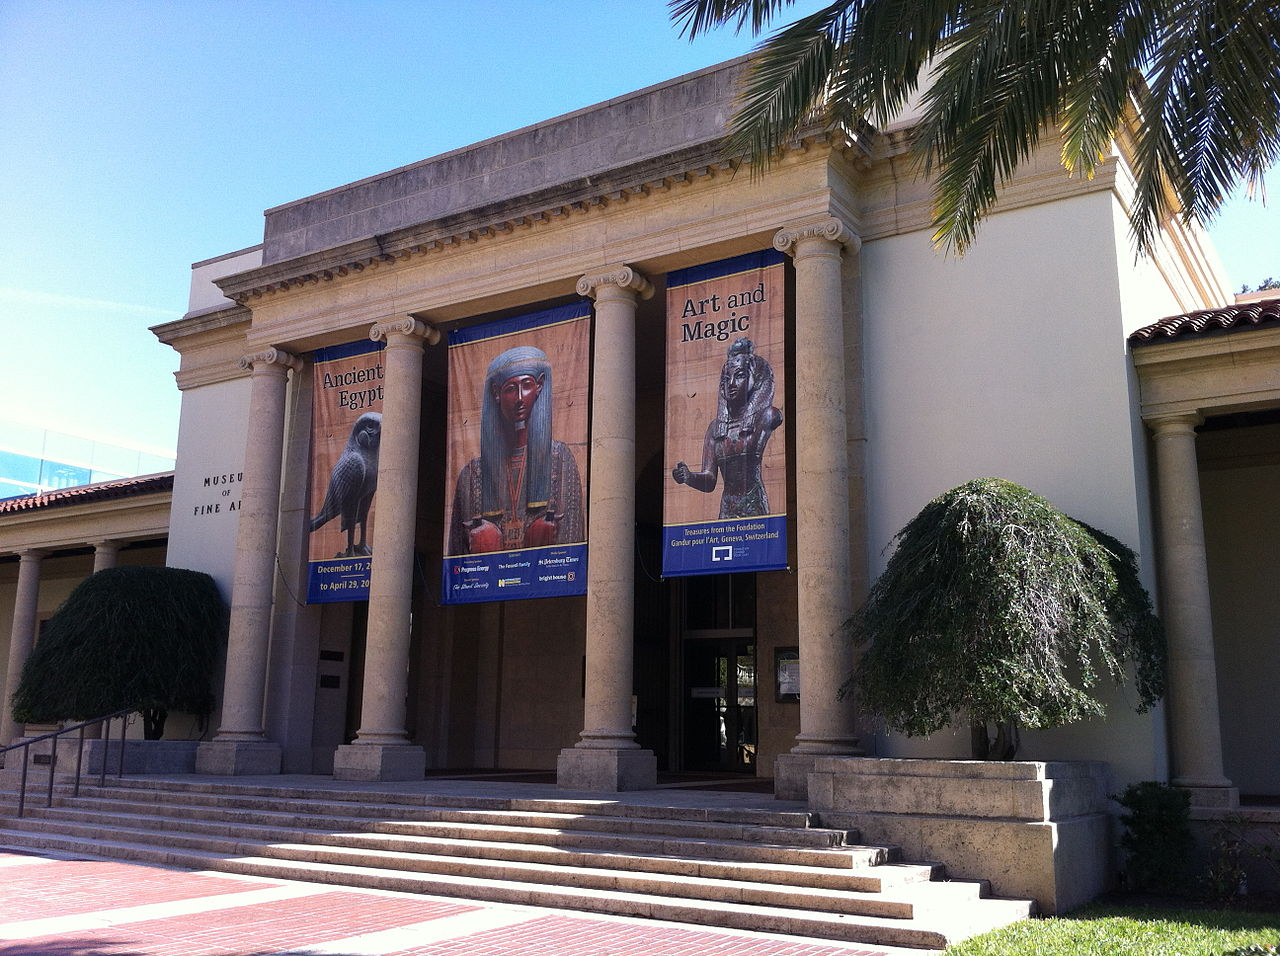 Modern-day view of the front portion of the museum.